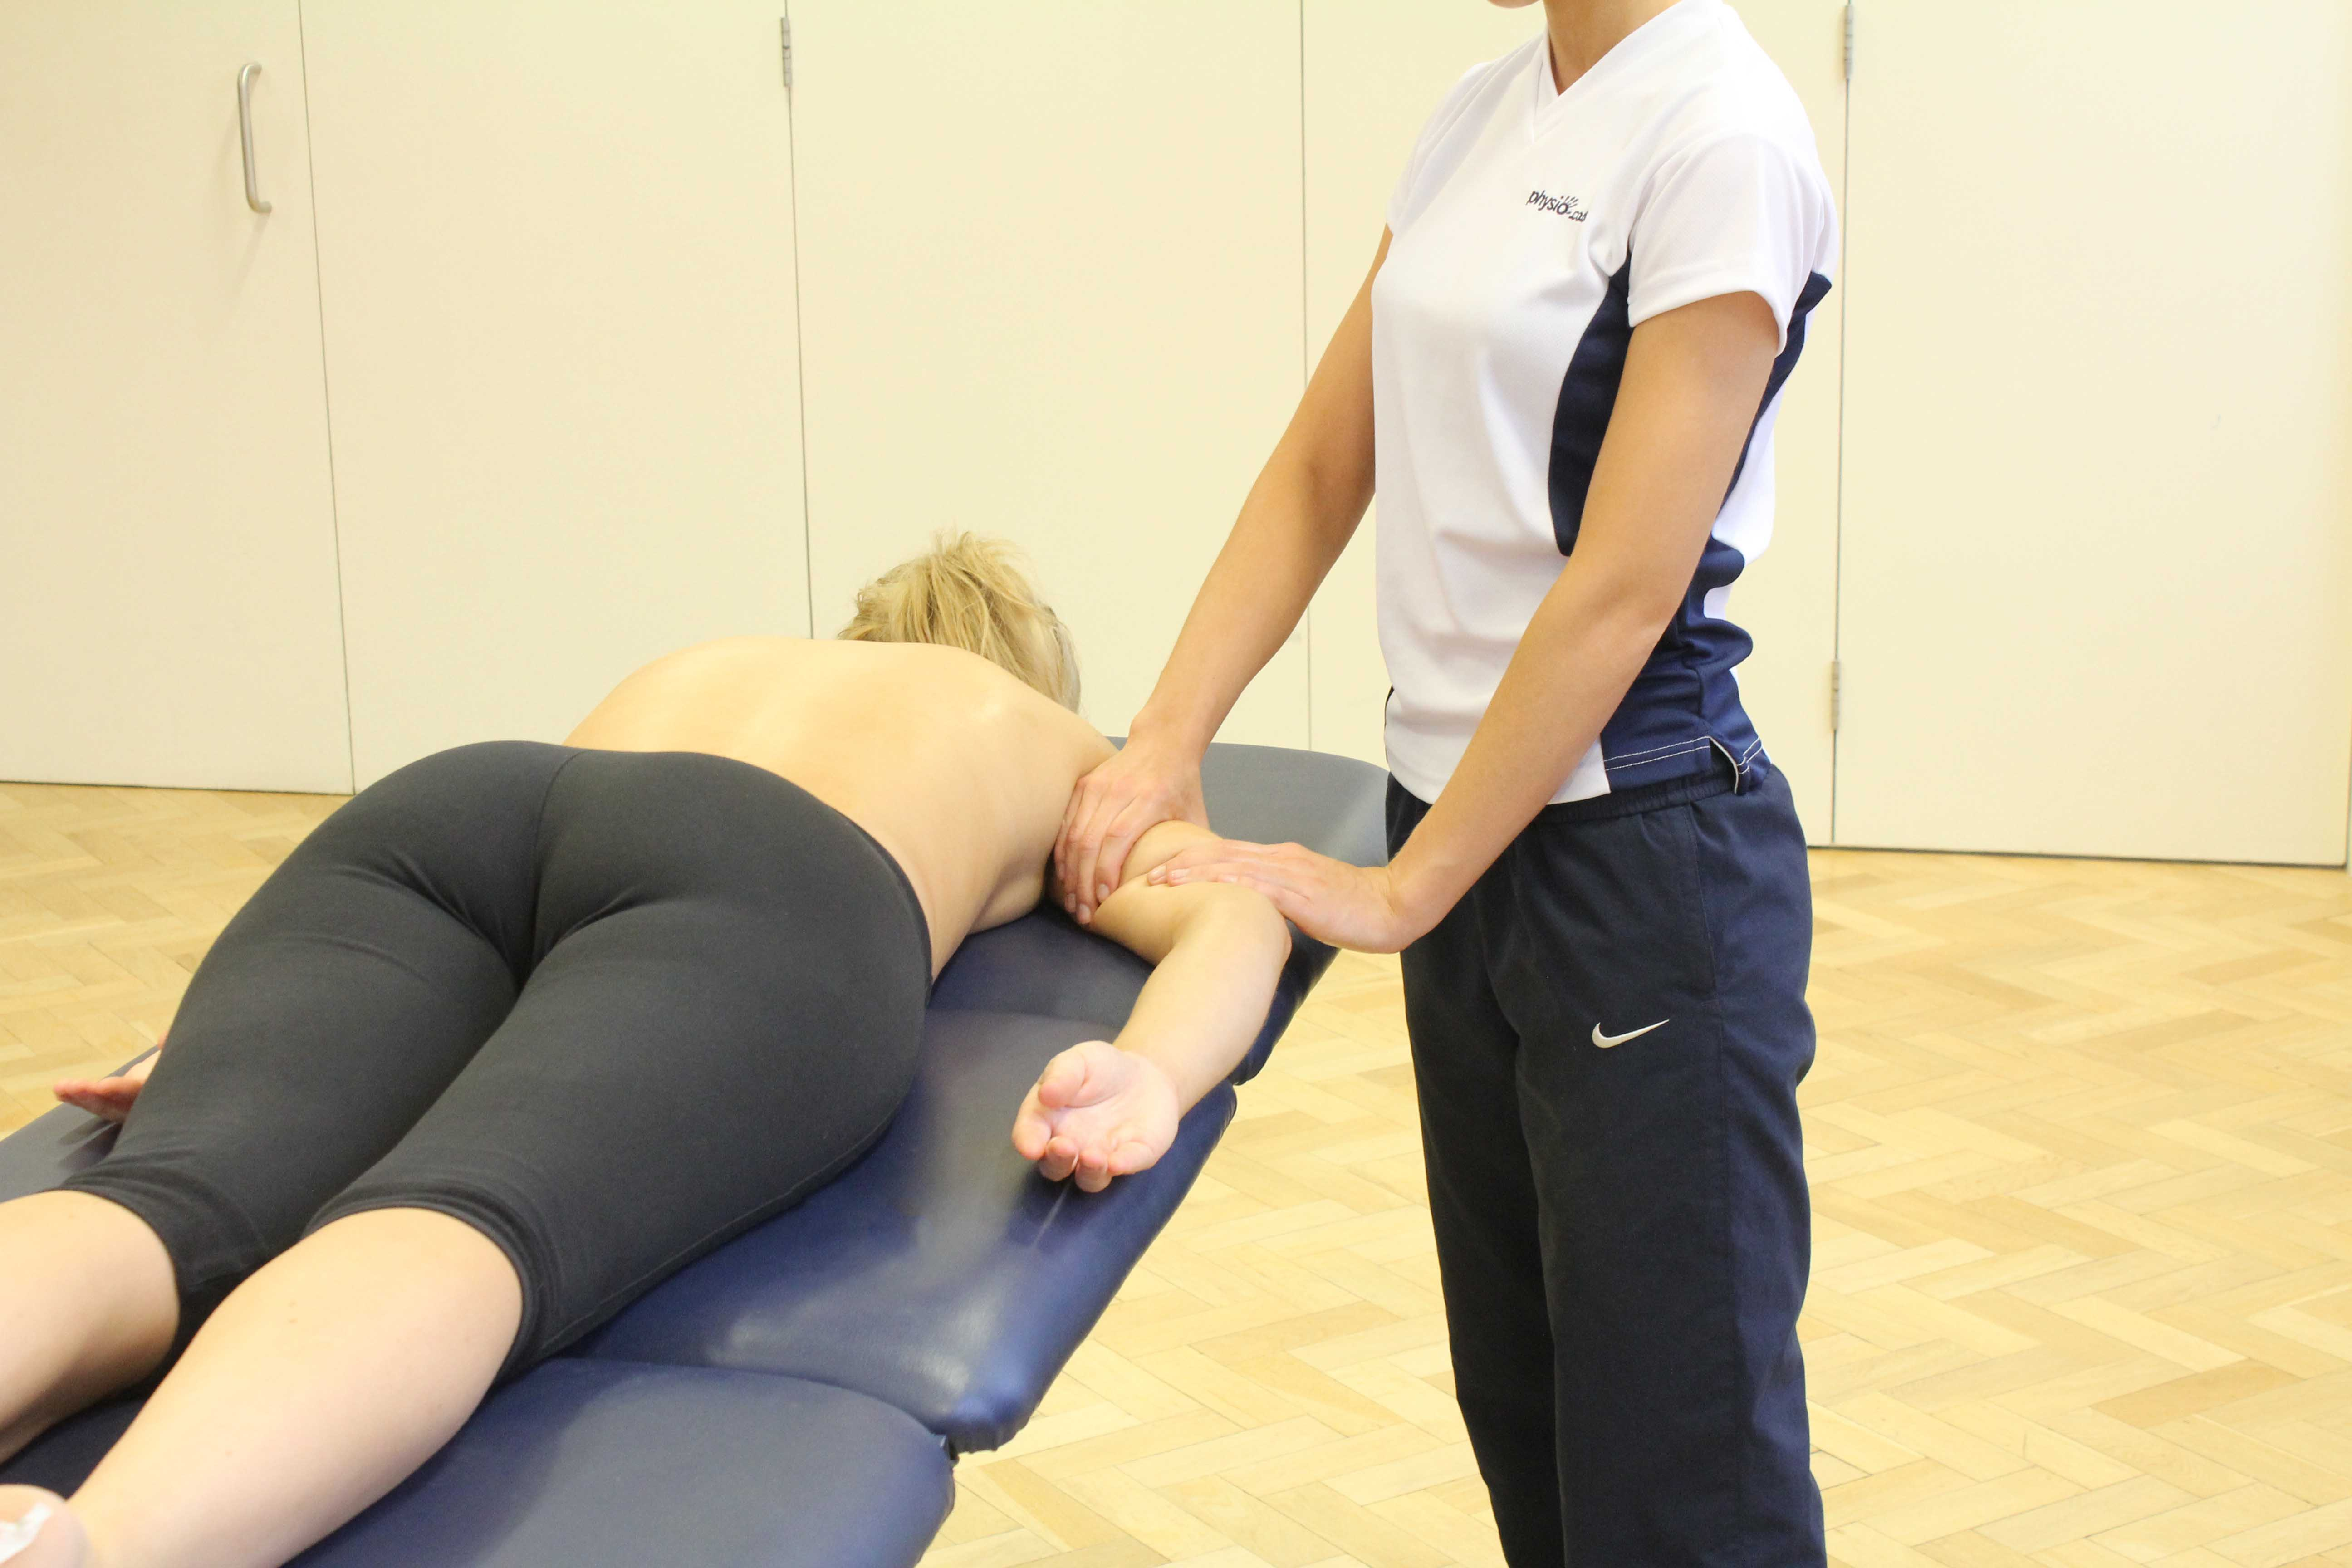 Experienced neurological physiotherapist performing PNF exercises on a client